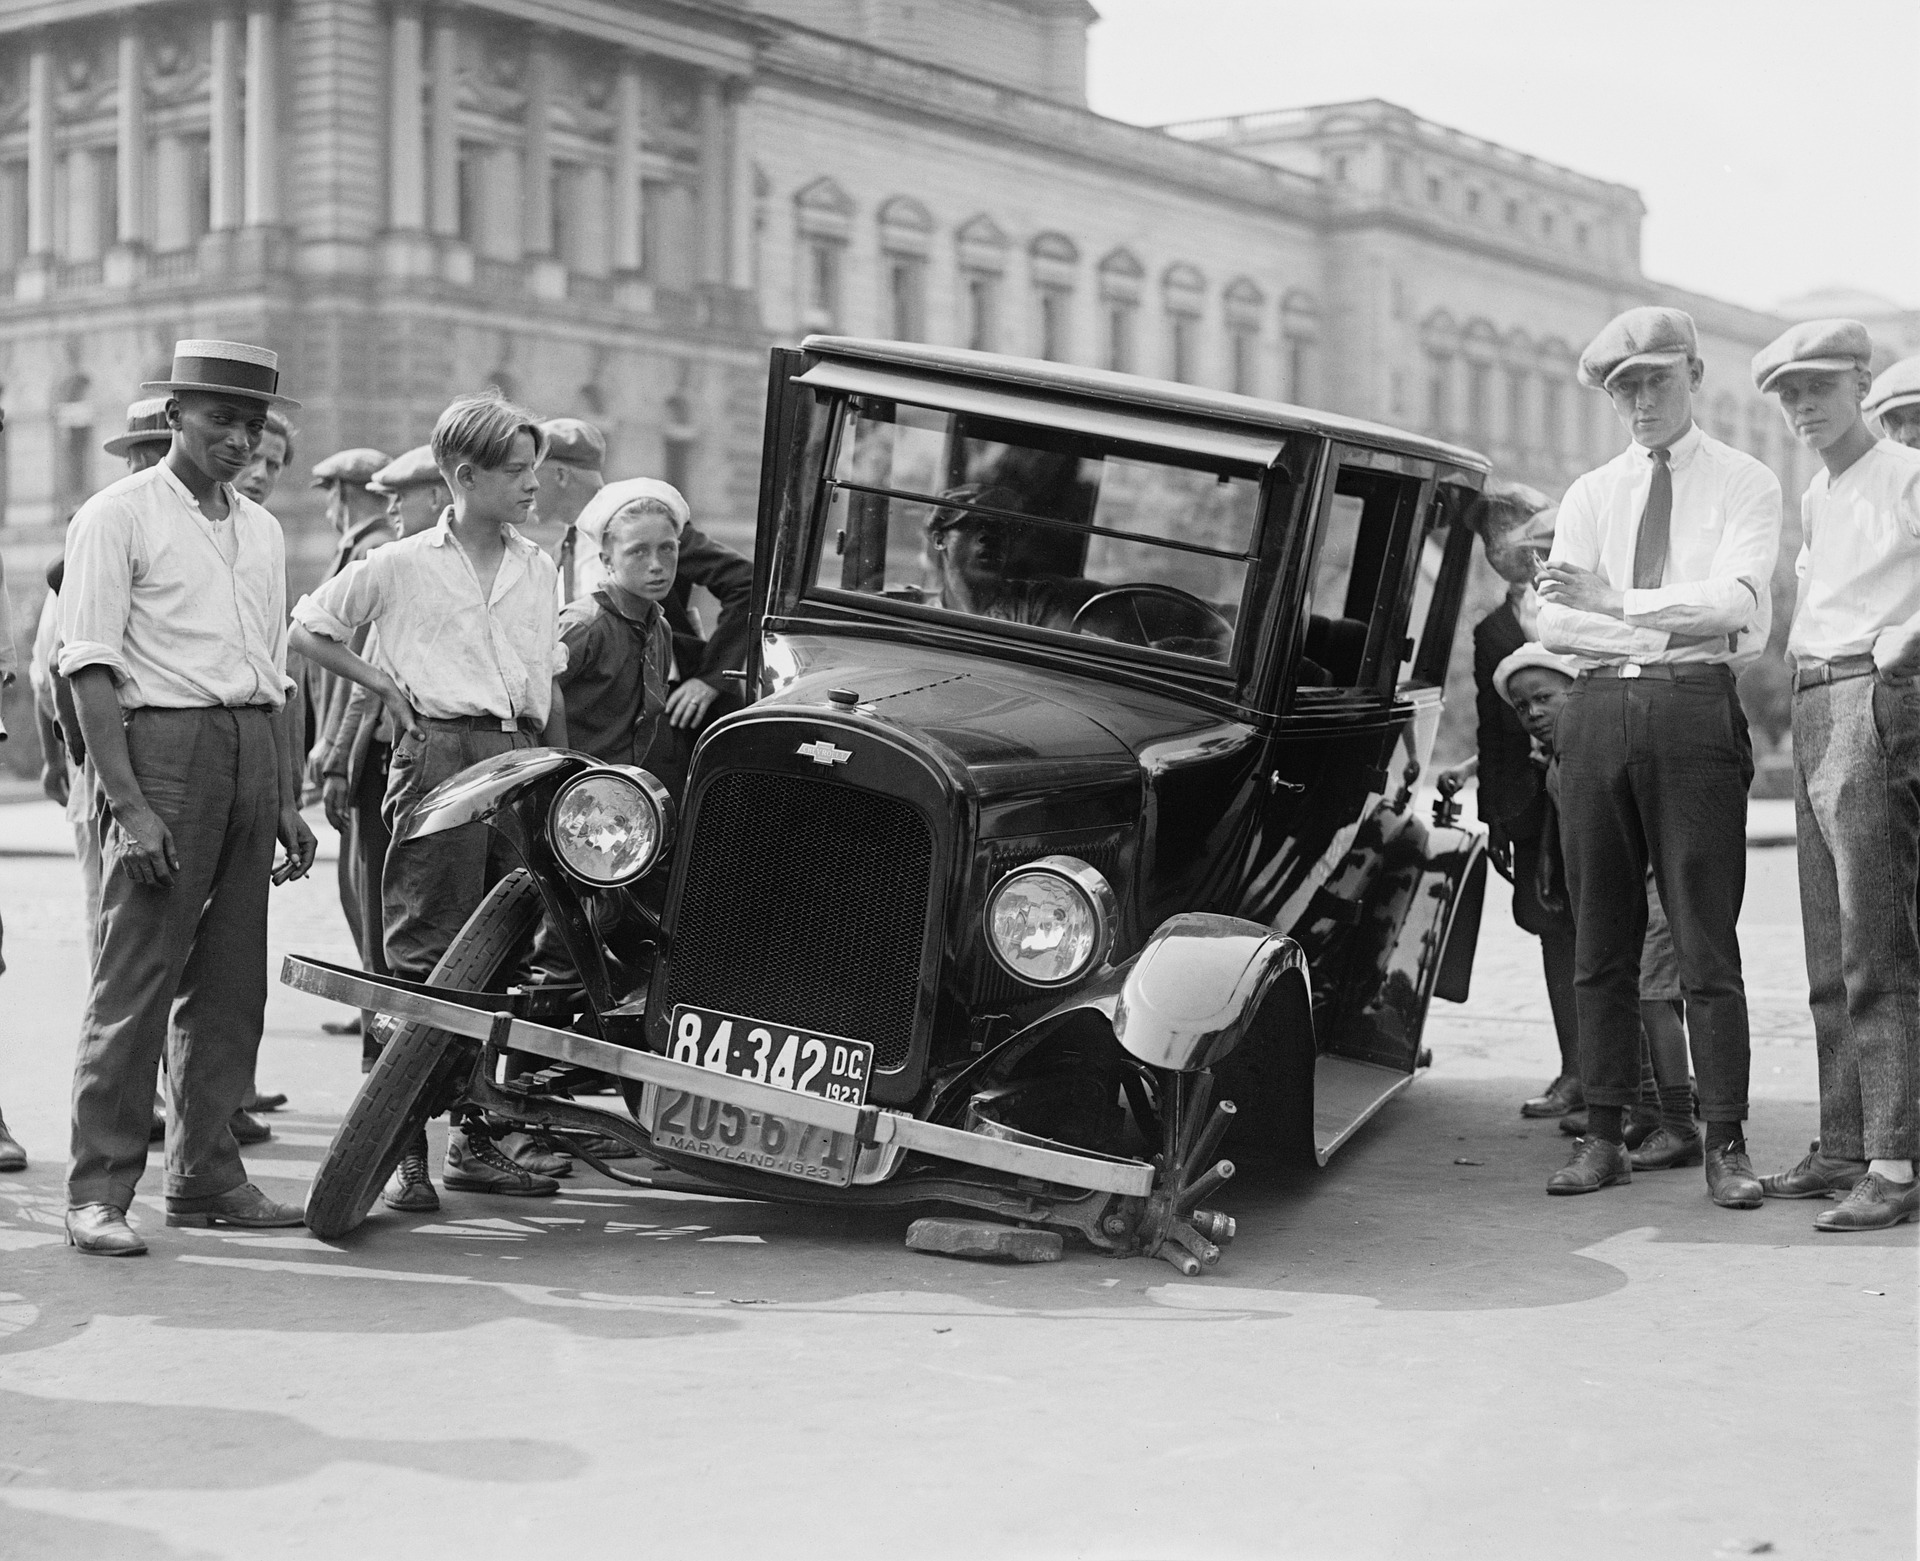 Car wreck, ca 1920. Public domain photo.